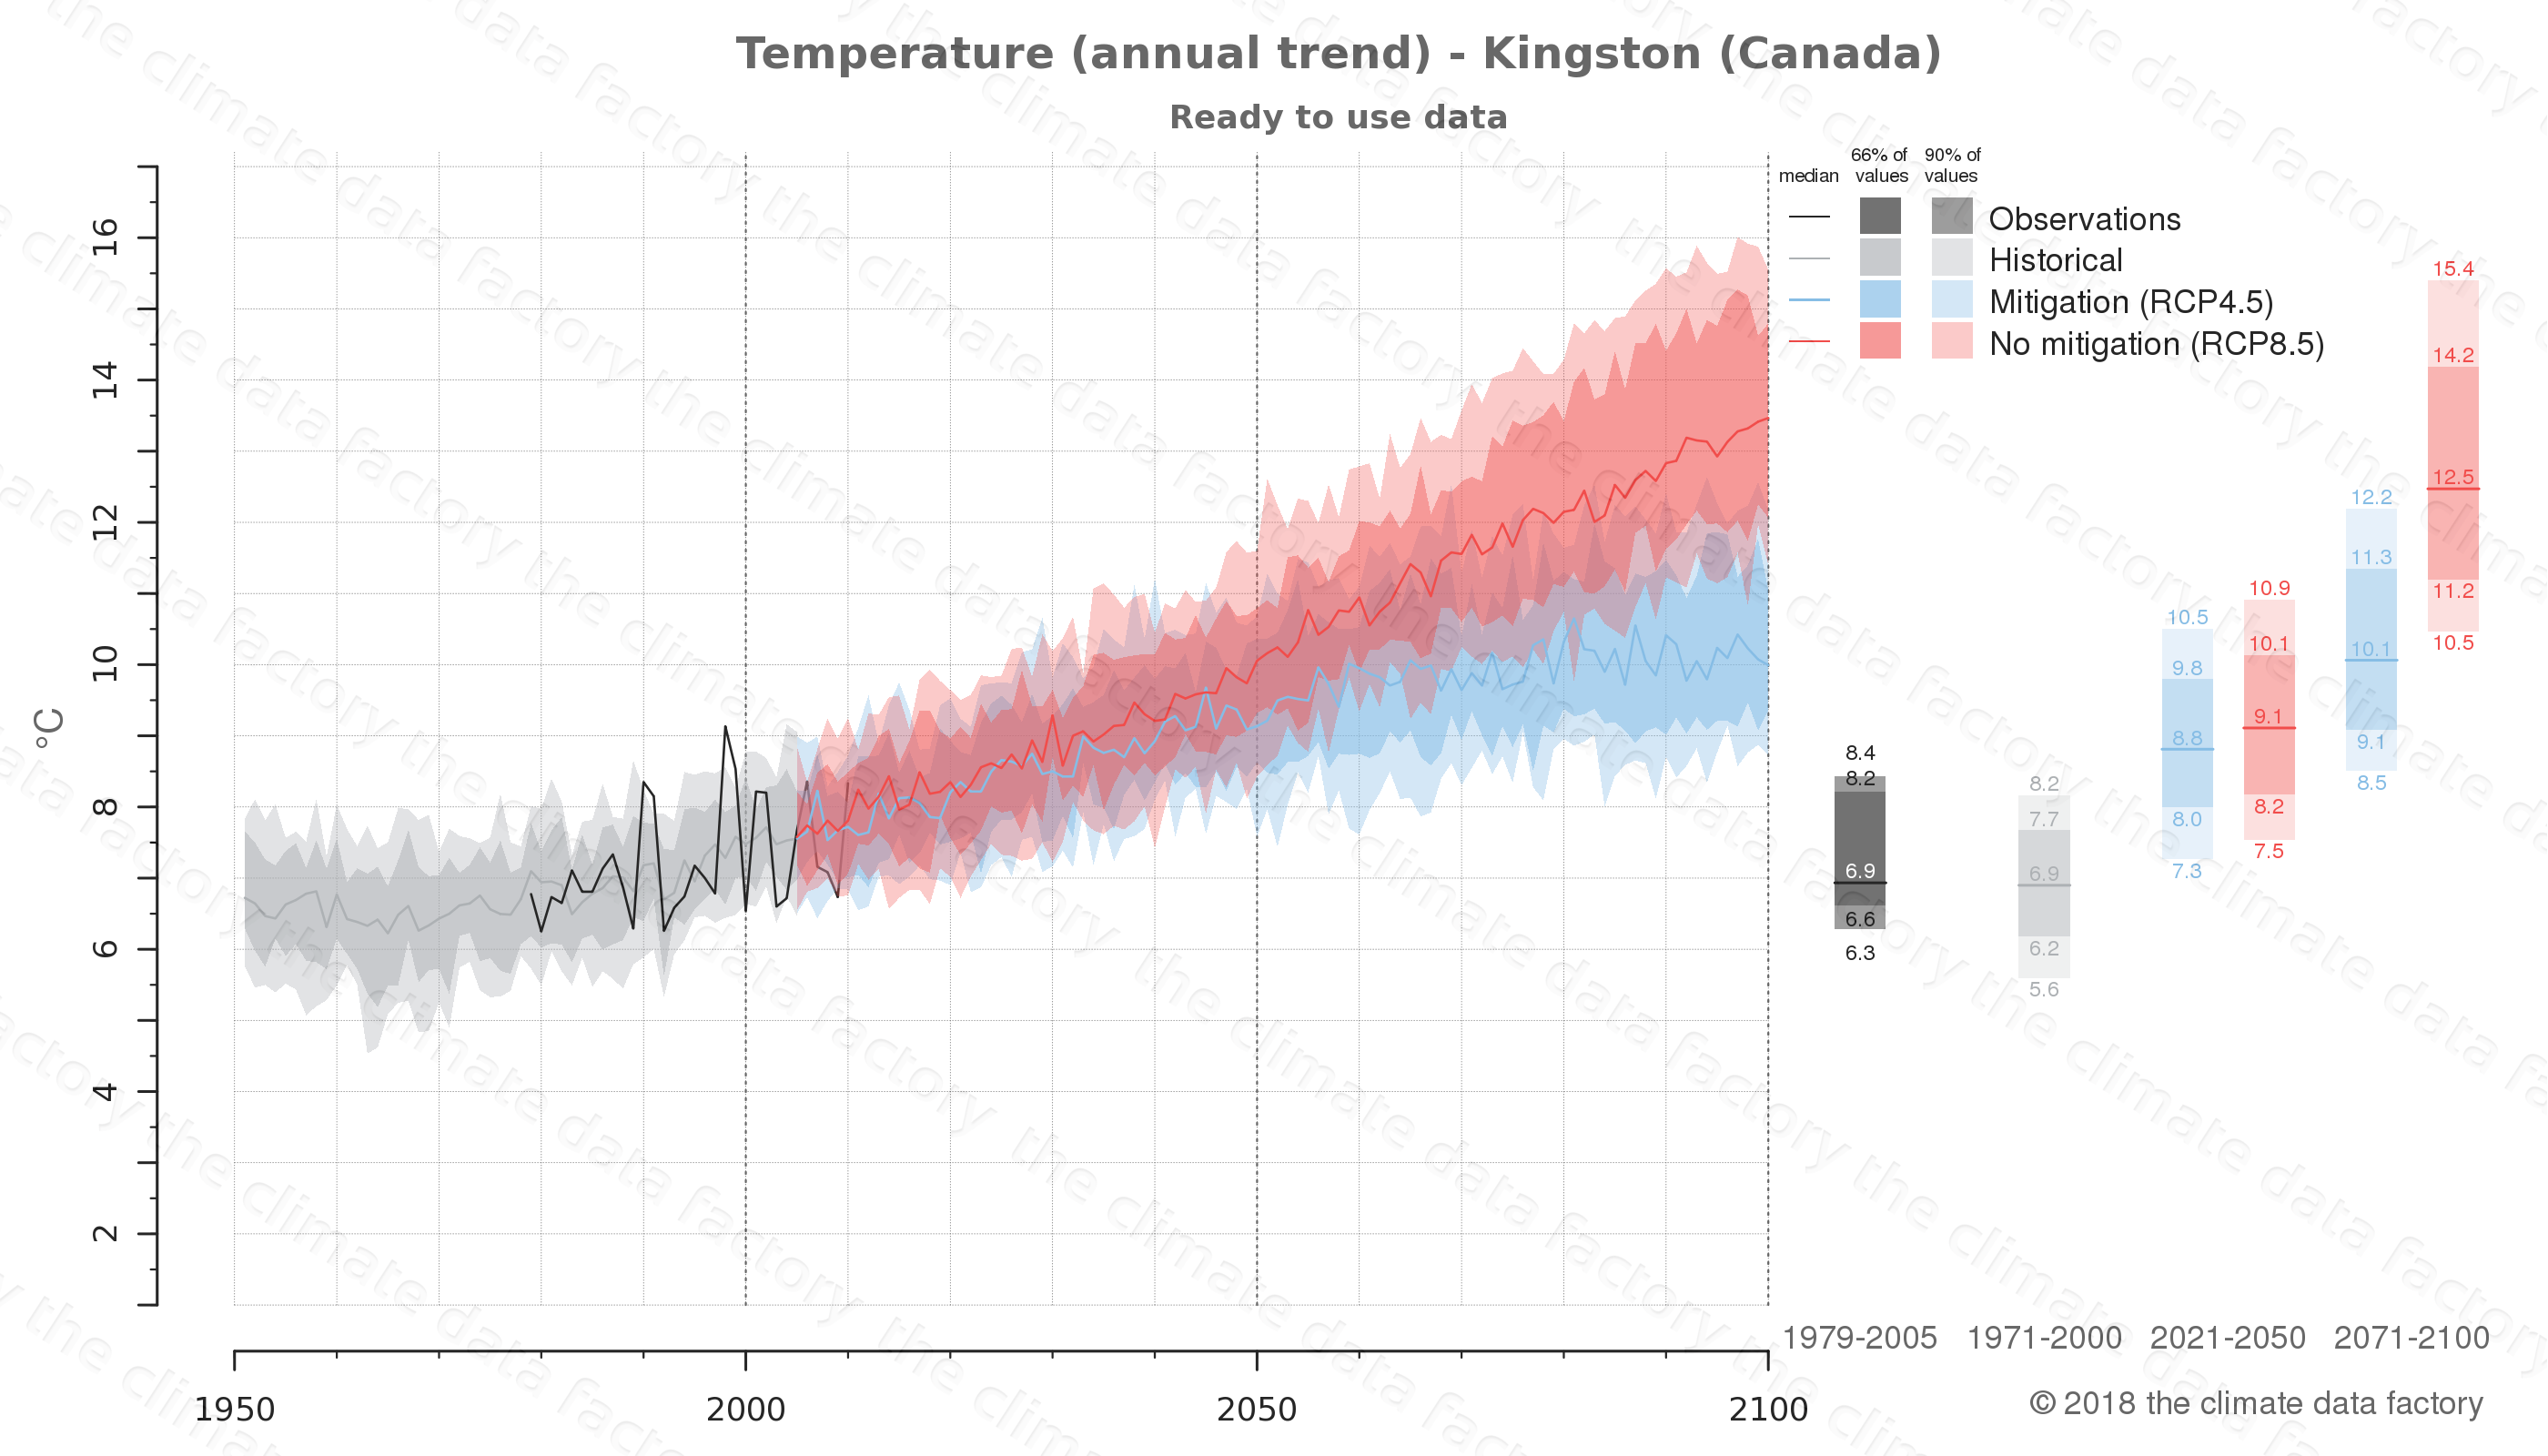 climate change data policy adaptation climate graph city data temperature kingston canada